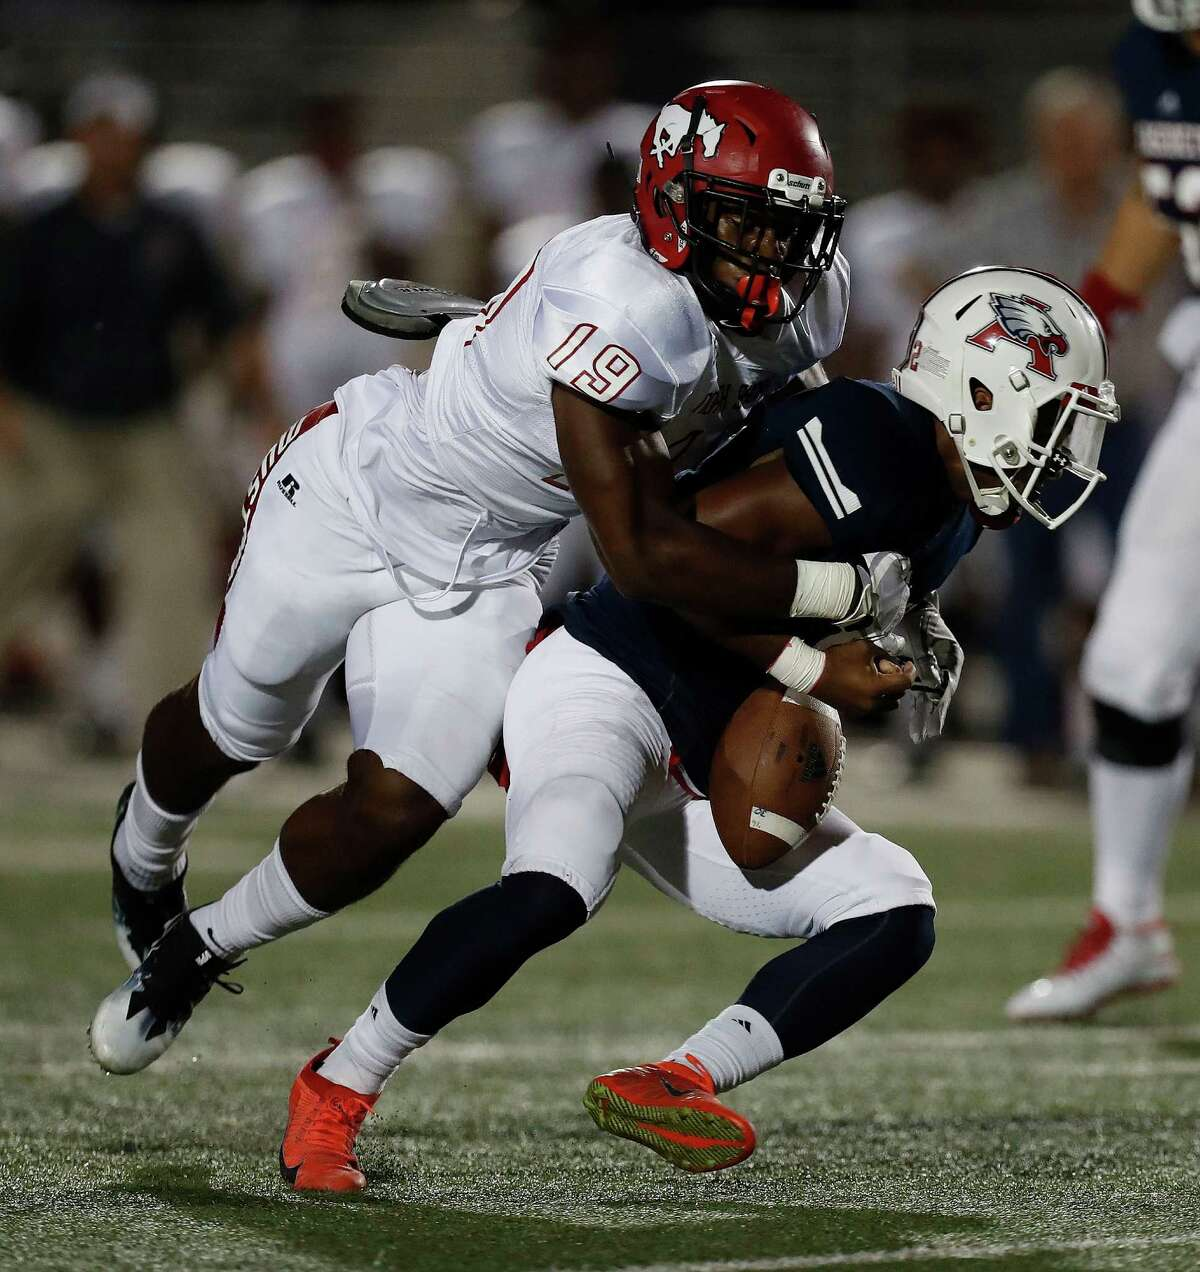 Atascocita quarterback Daveon Boyd gets sacked and has the ball stripped out of his hands by North Shore defensive end K'lavon Chaisson.